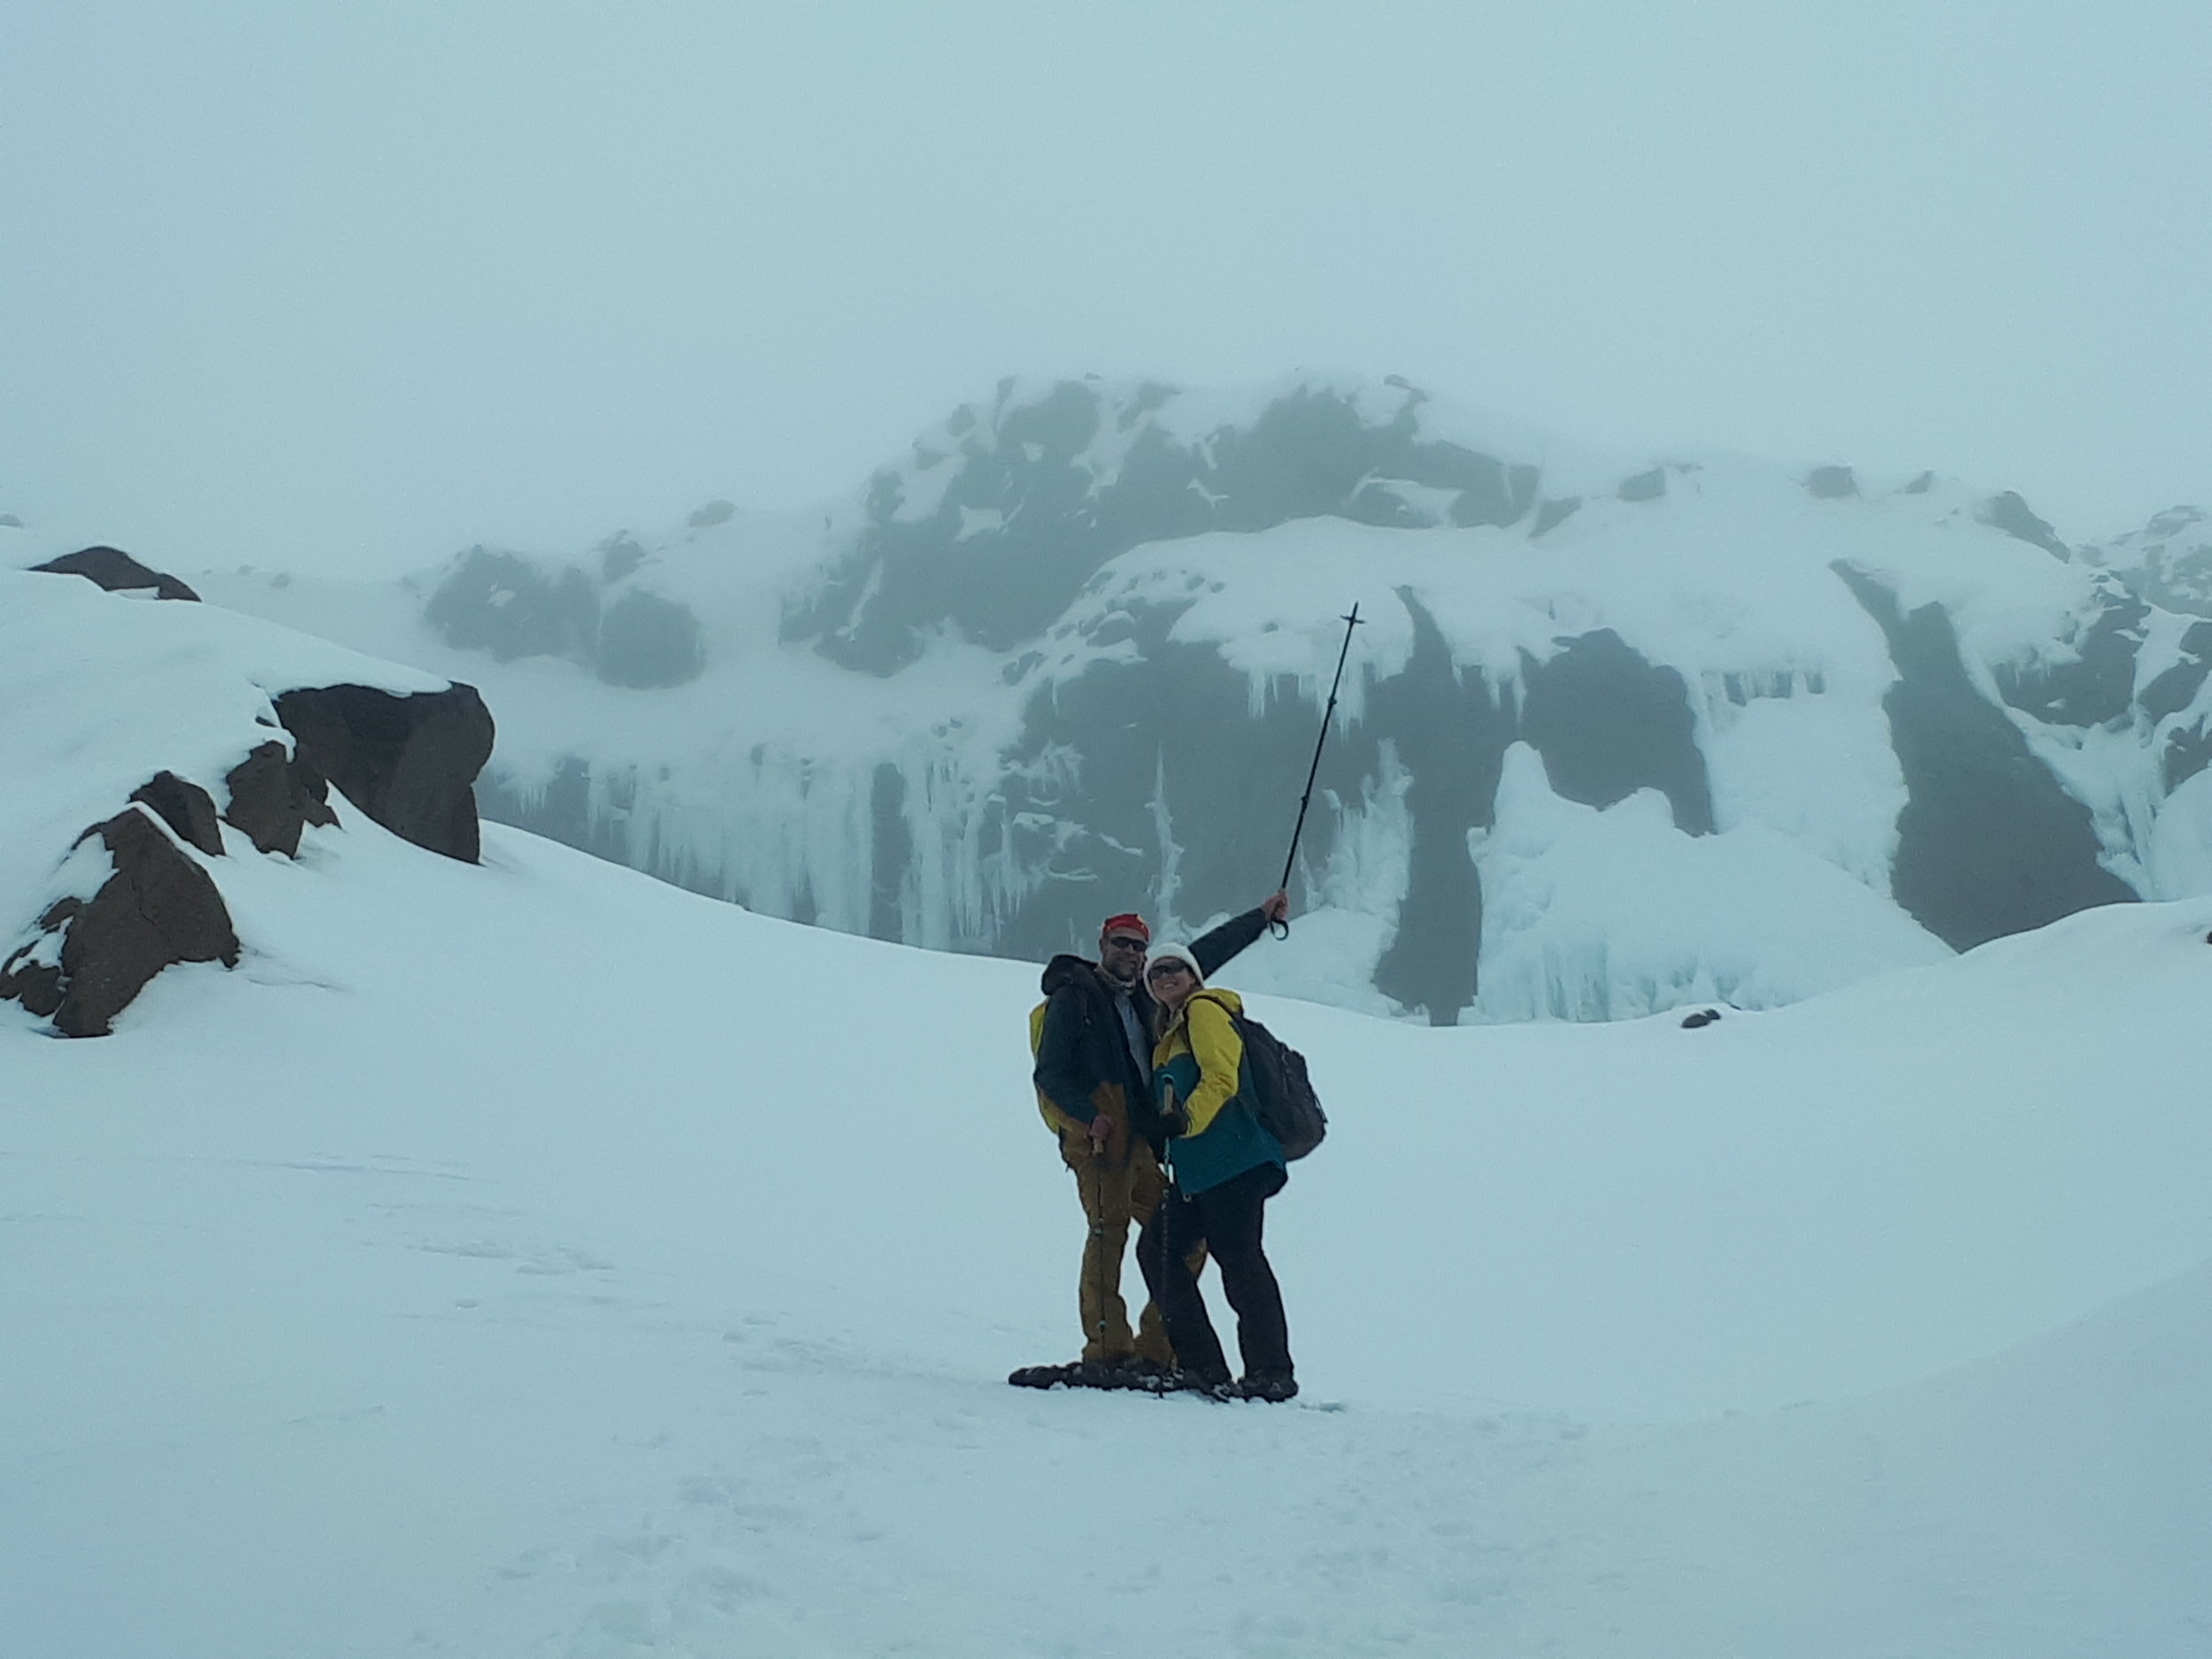 we're Posing in front of an icy waterfall: Snowshoe walking tour with chris jolly outdoors